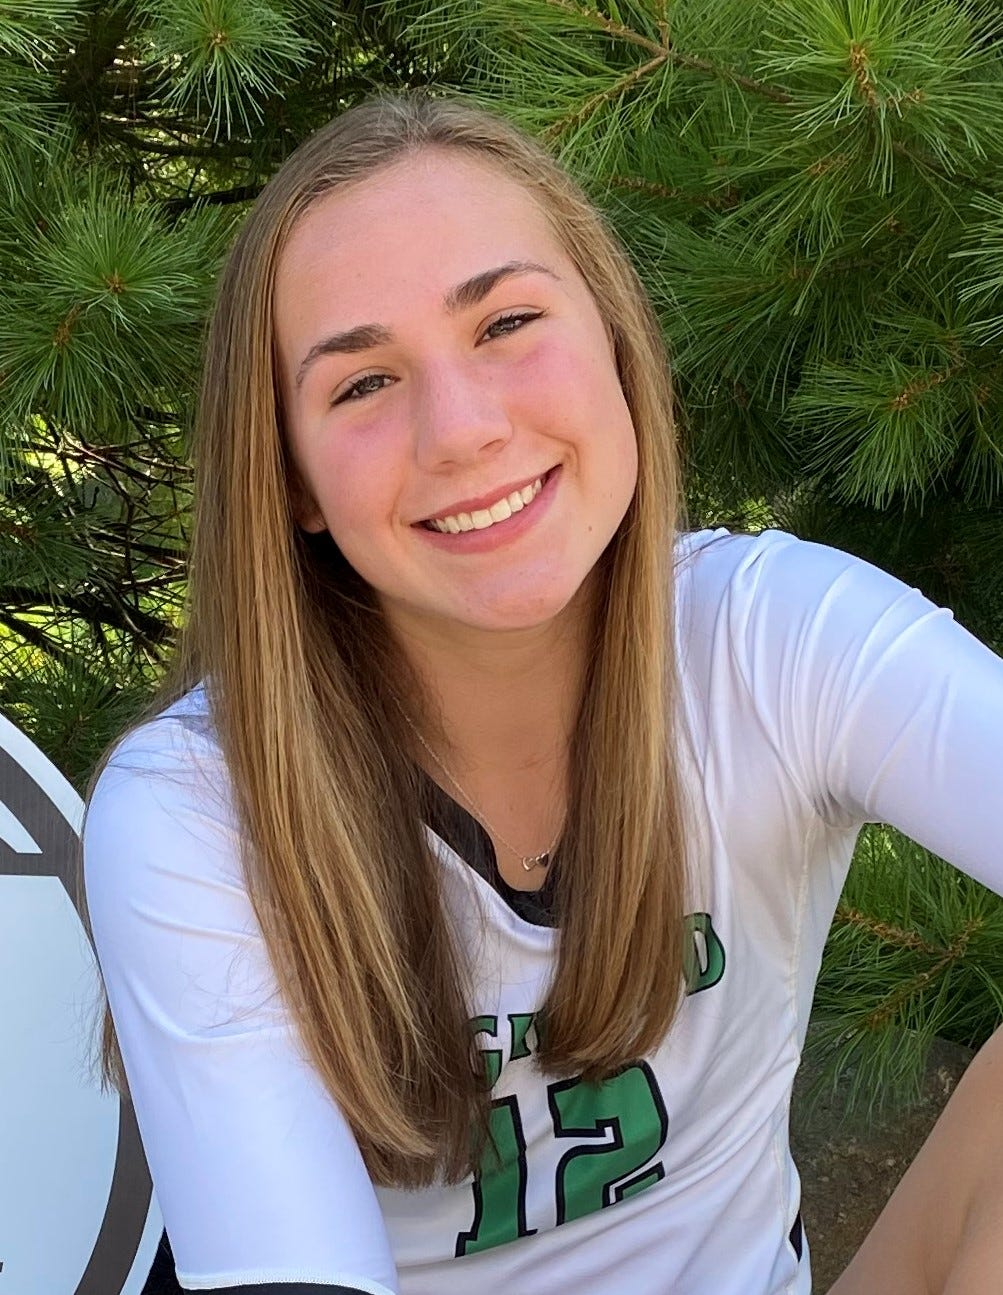 Alayna Tessena of Highland is one of the best volleyball players in the state of Ohio.